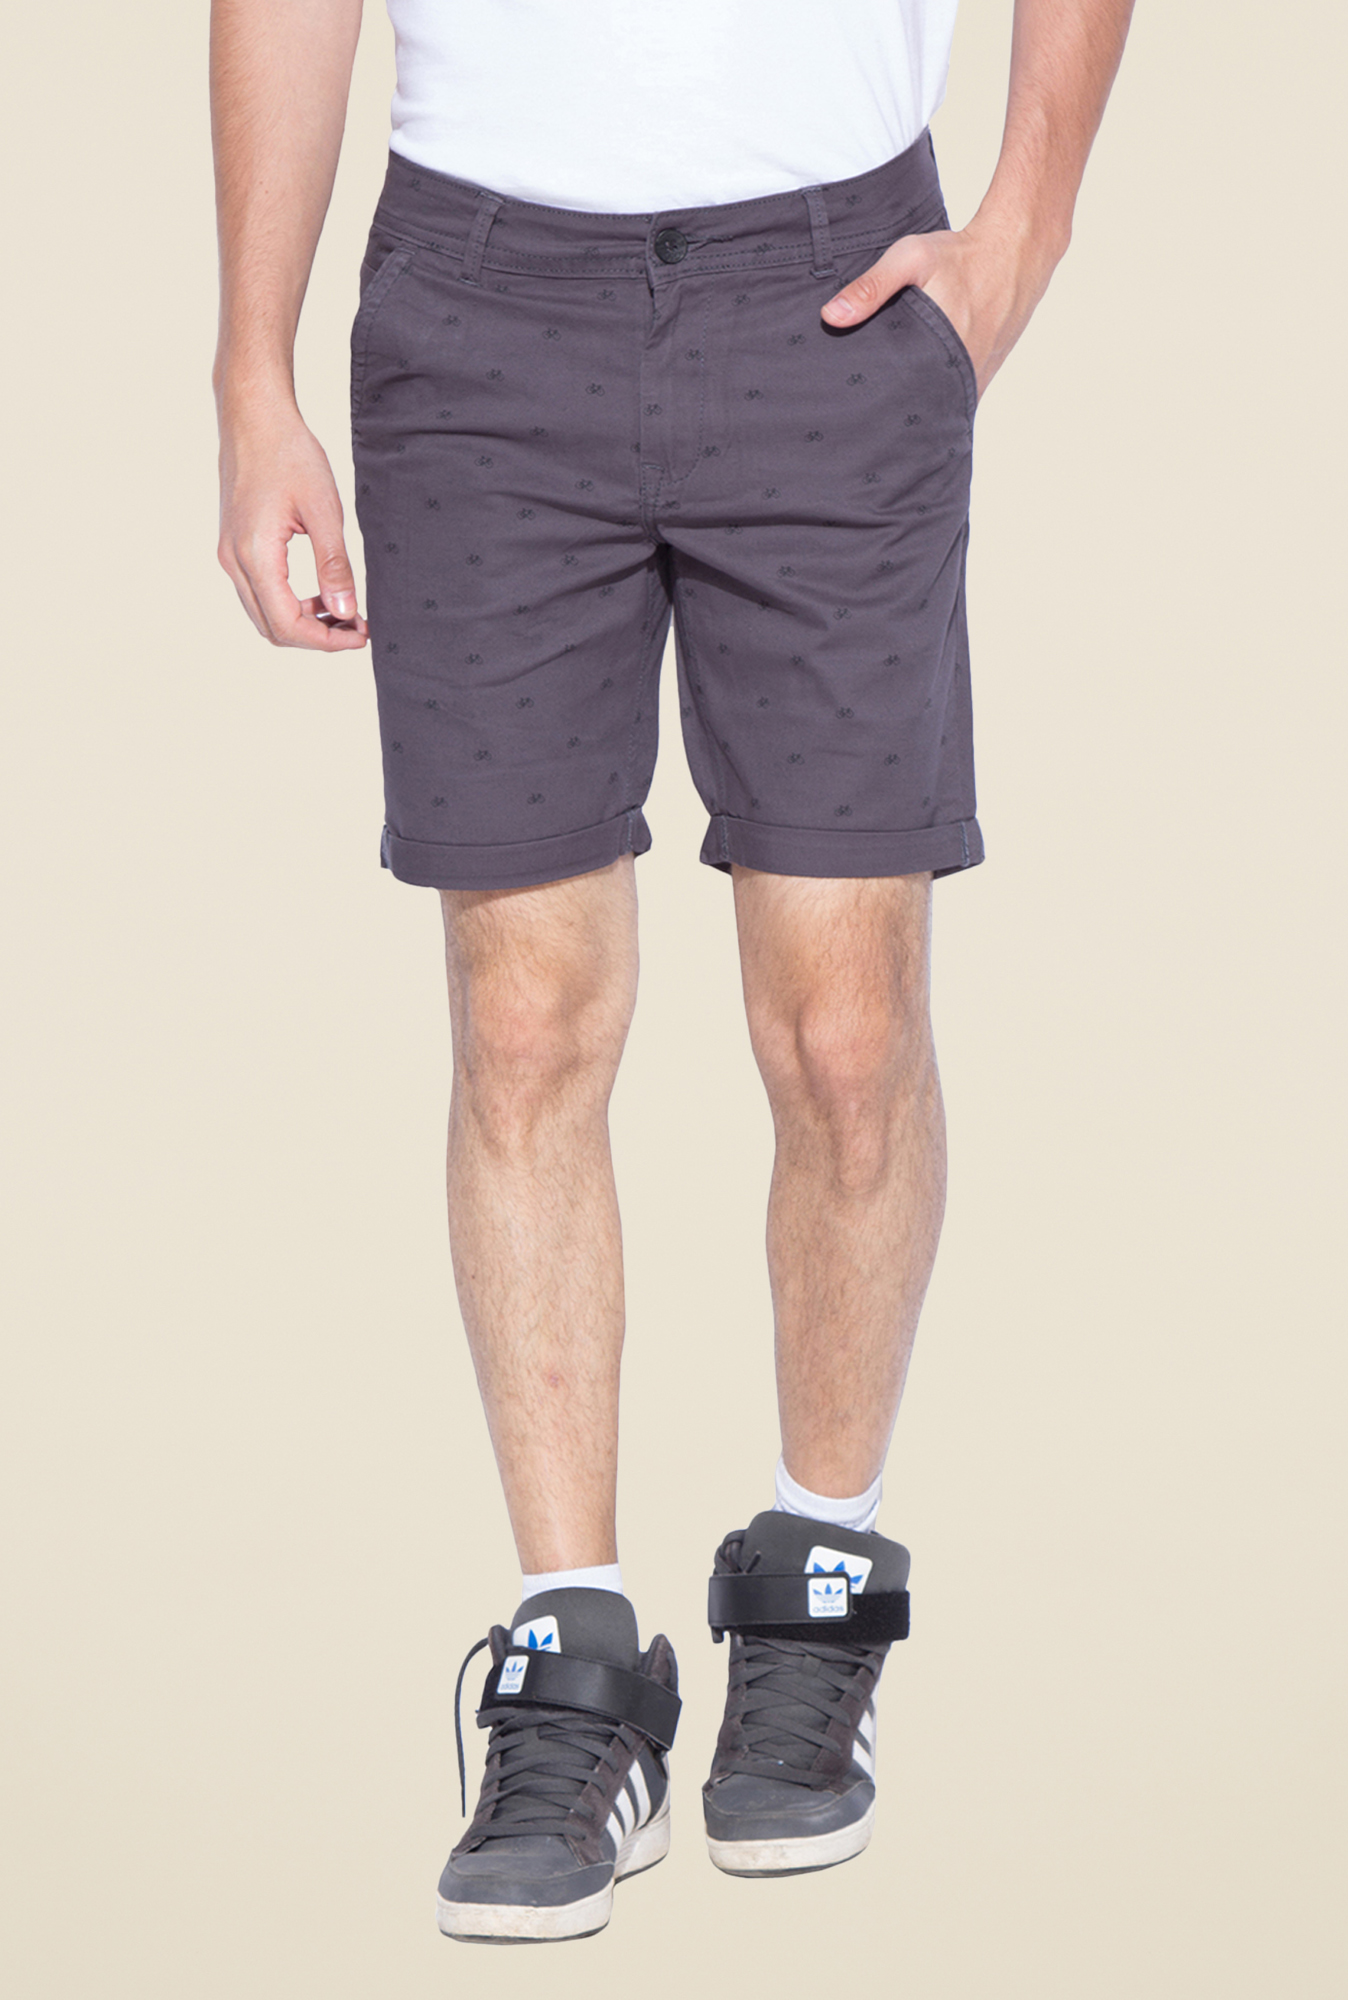 Mufti Grey Printed Shorts